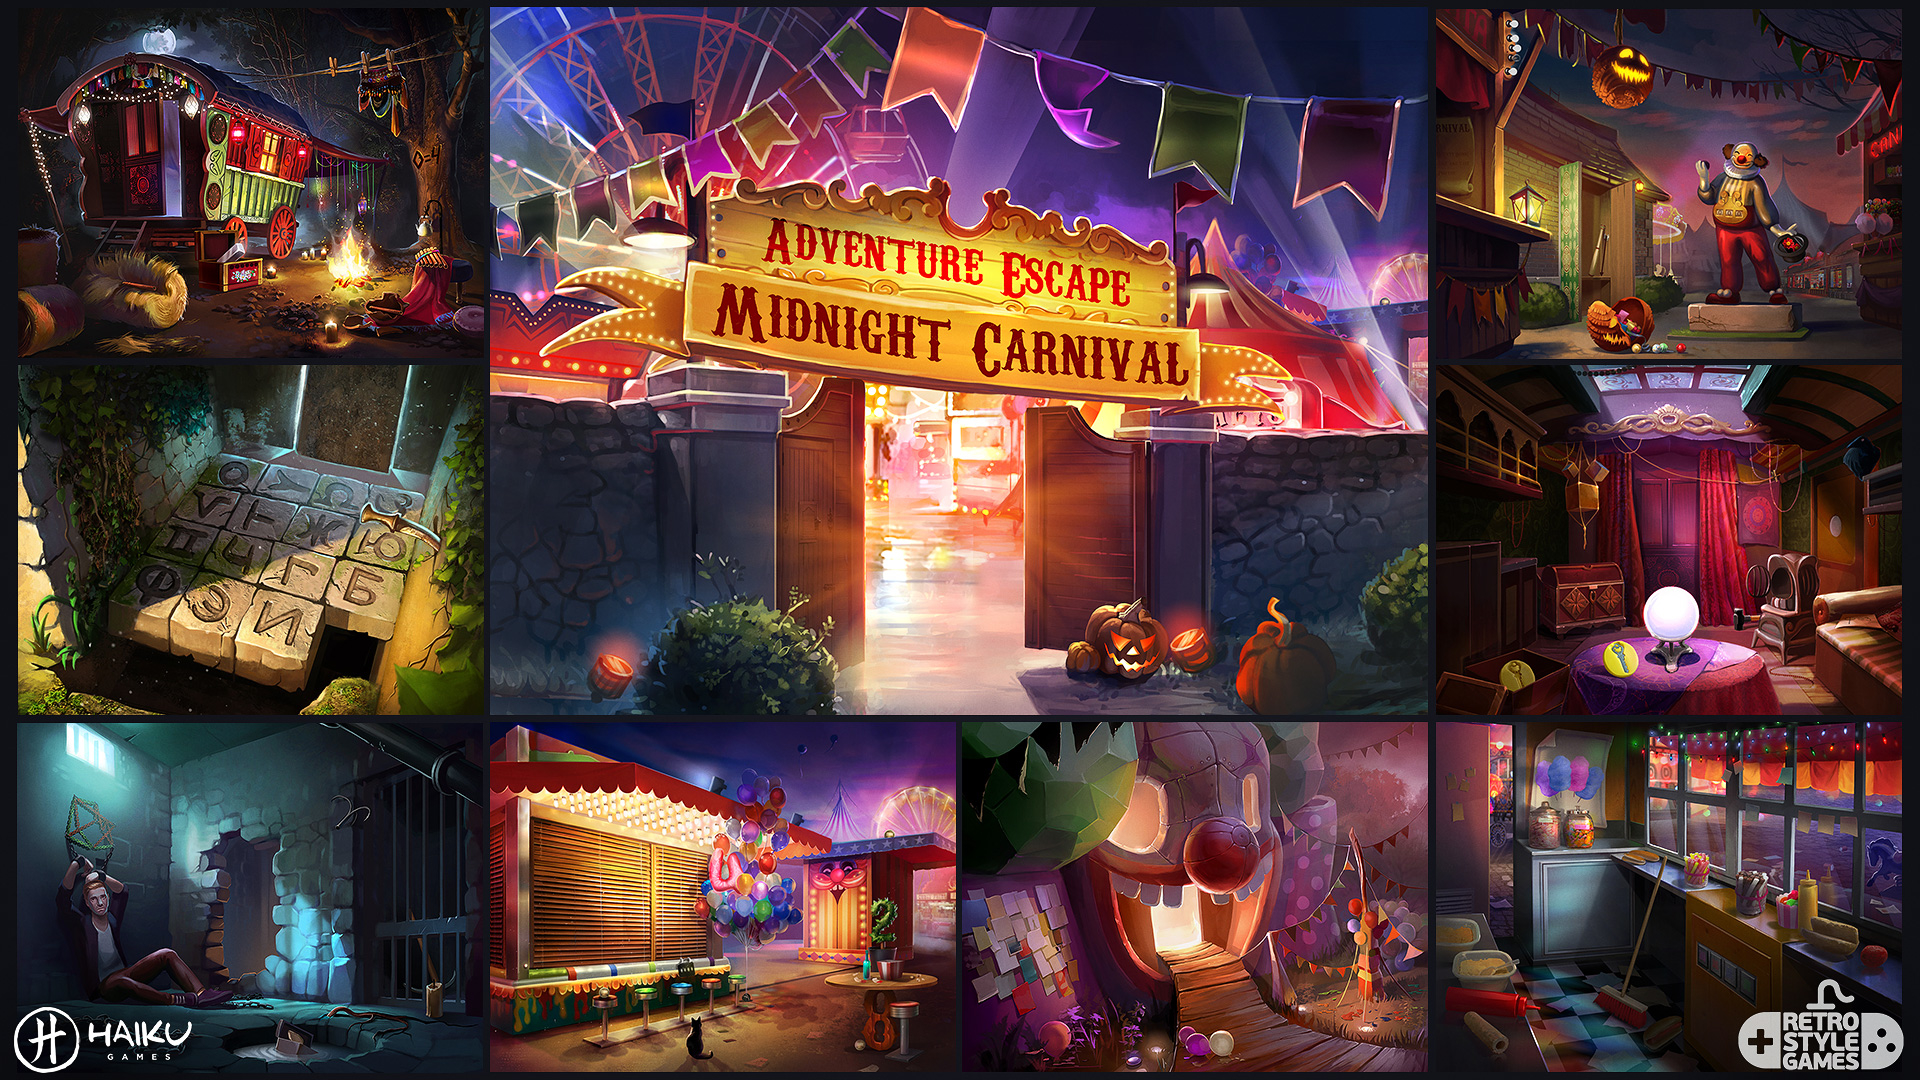 midnight 2d carnival full art sheet1 backgrounds